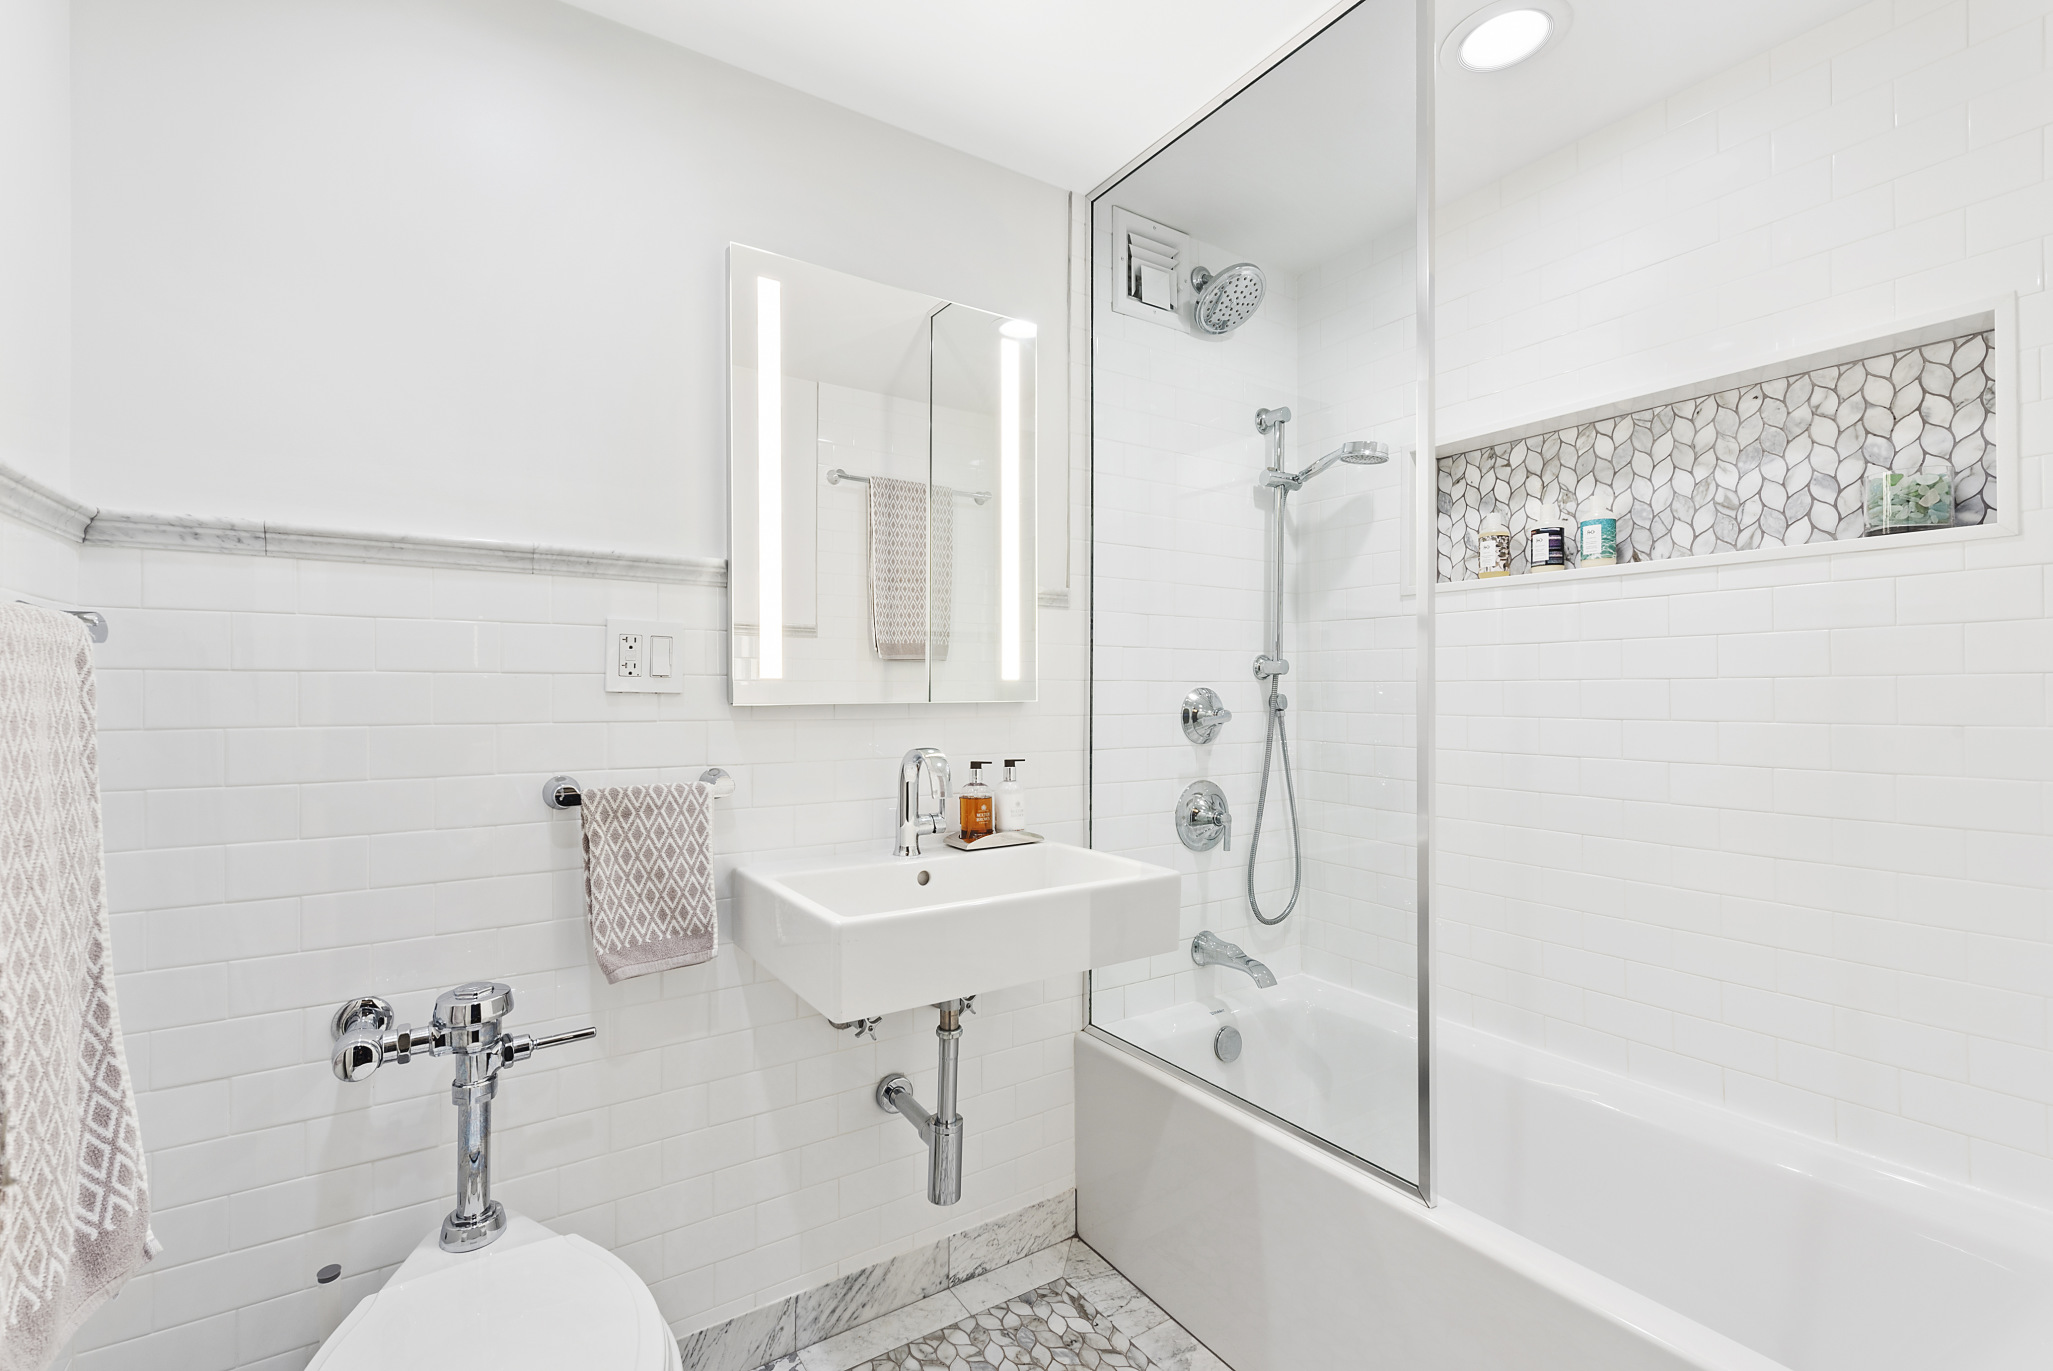 Apartment for sale at 410 West 24th Street, Apt 12-J